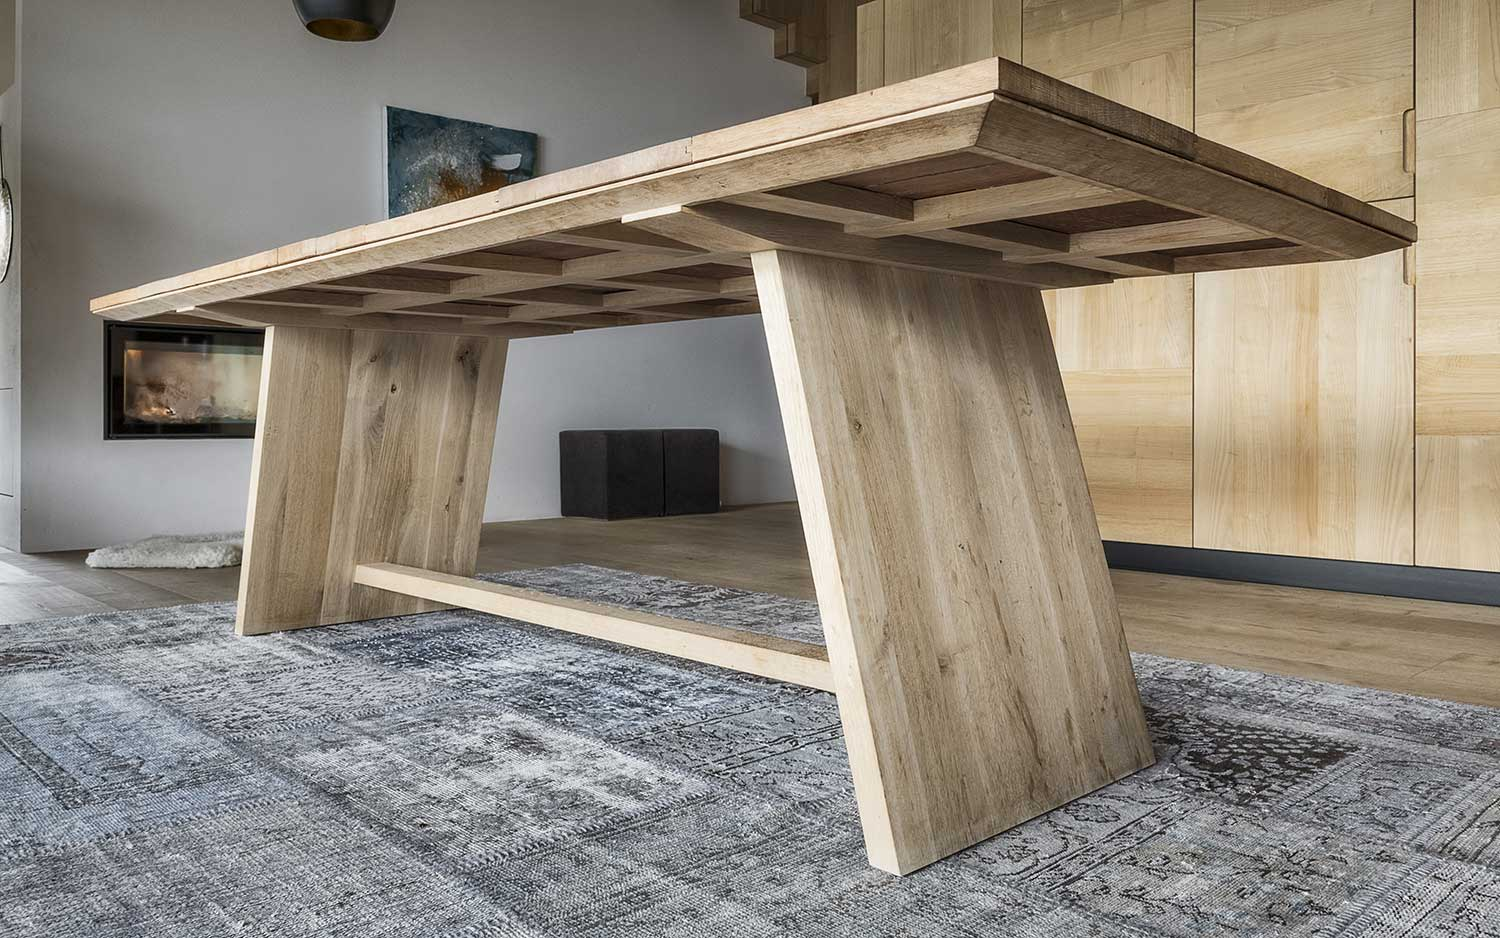 vine table - Weintisch - Tavolo di vino